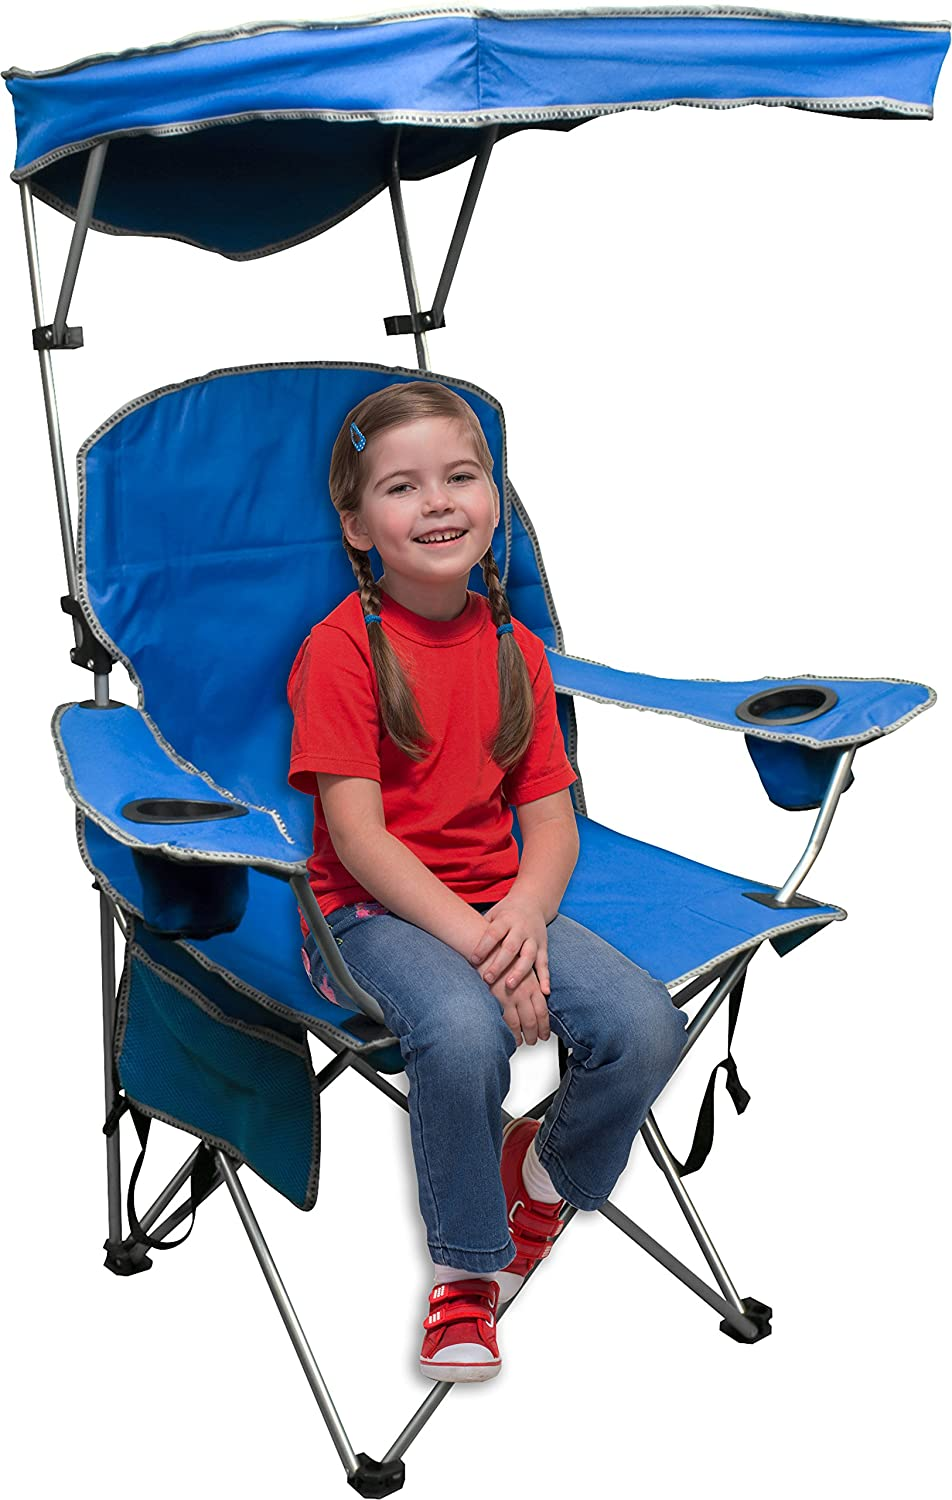 Amazon.com : Quik Shade Adjustable Canopy Folding Camp Chair   Royal Blue :  Folding Sports Chairs : Sports U0026 Outdoors